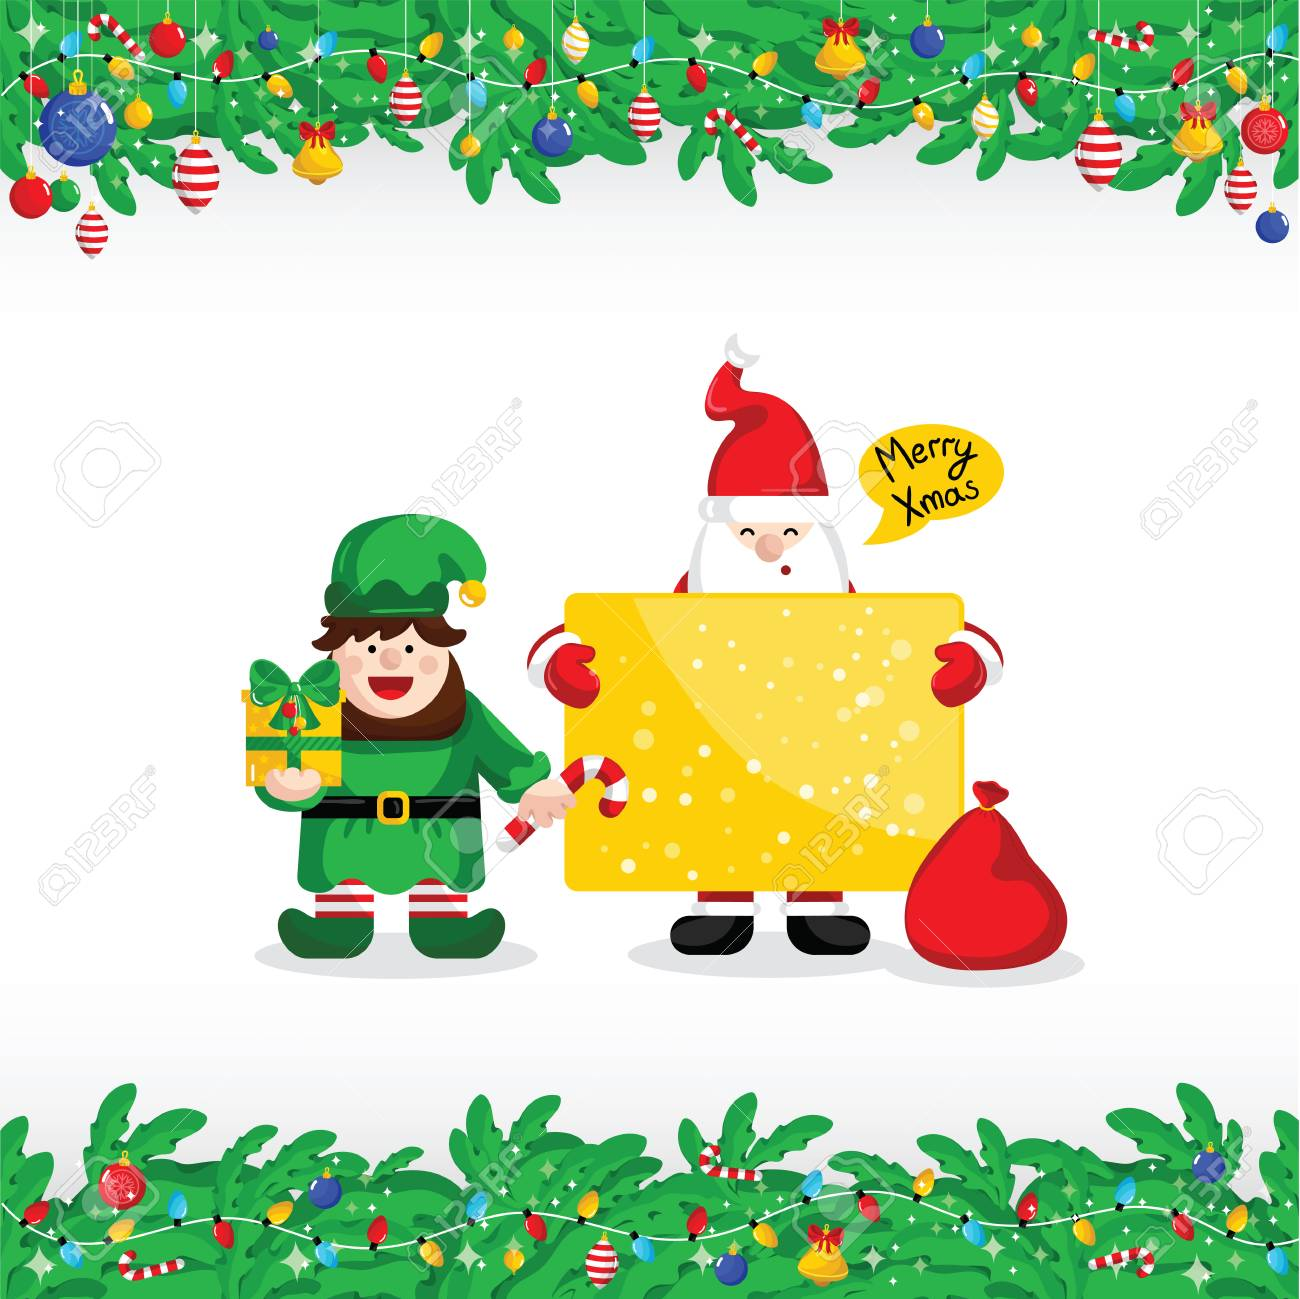 Merry christmas greeting card with santa claus and christmas merry christmas greeting card with santa claus and christmas elf vector illustration santa with giftbox m4hsunfo